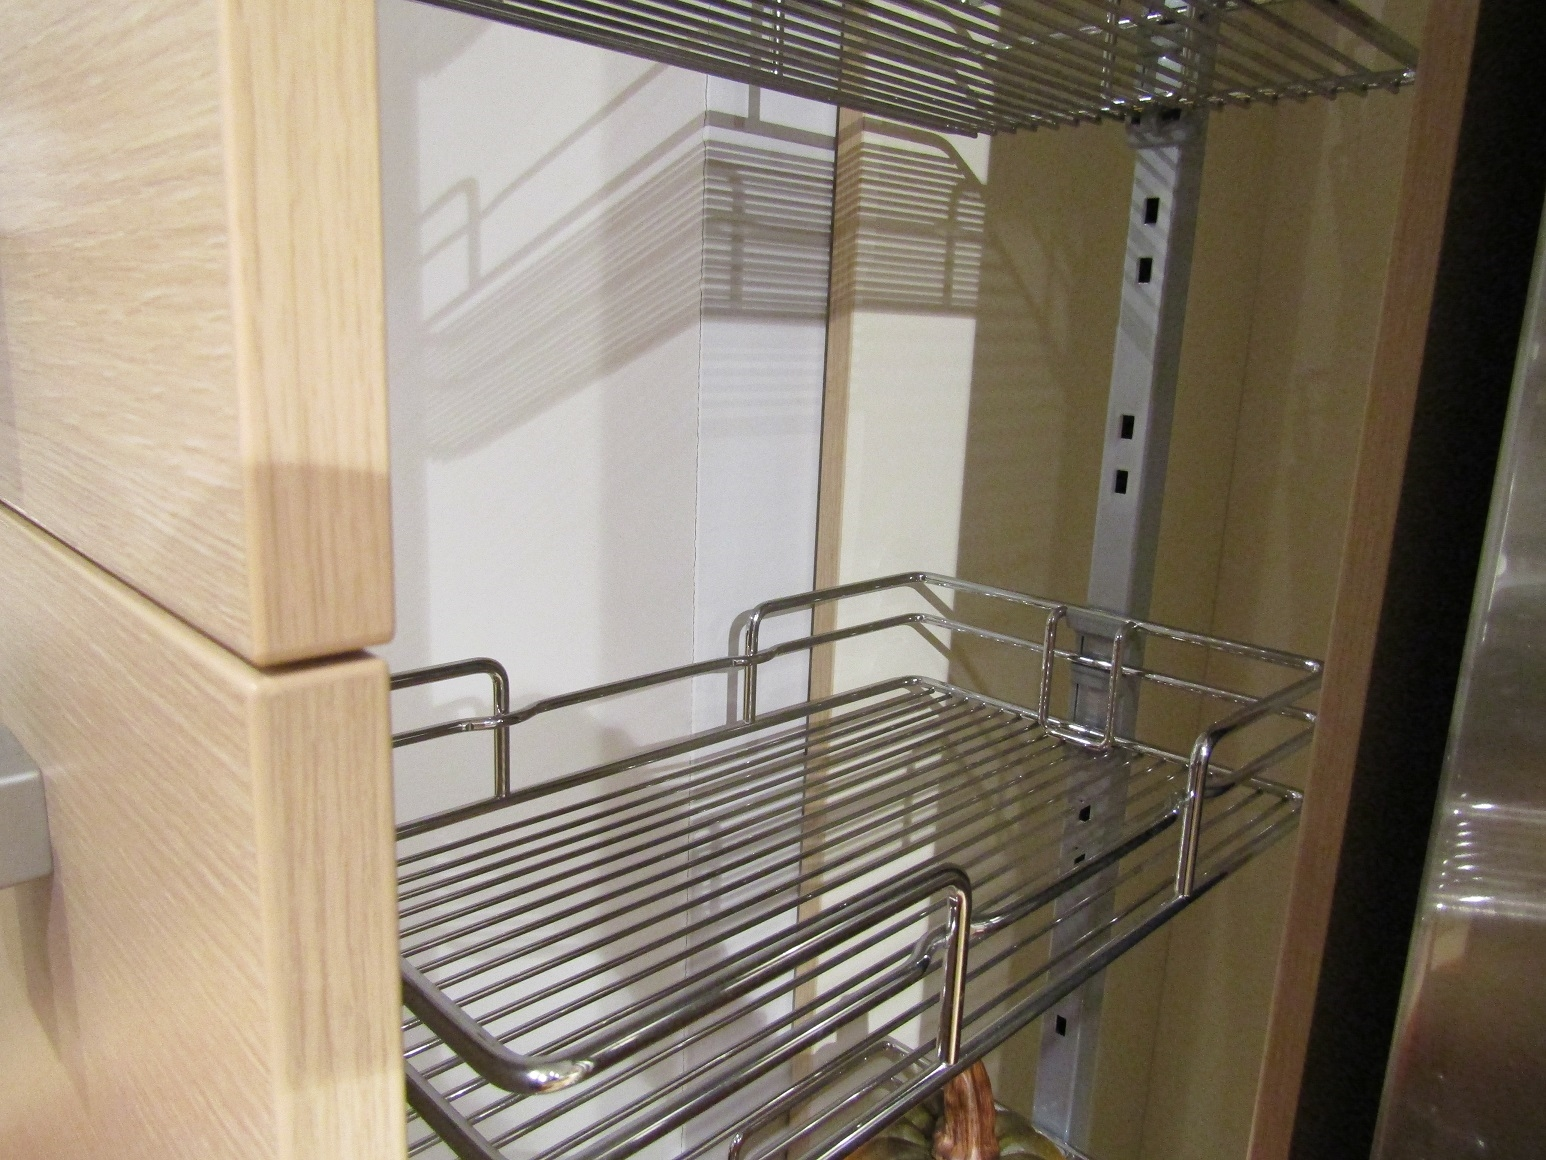 Cucina Scavolini Sax. With Cucina Scavolini Sax. Medium Size Of ...